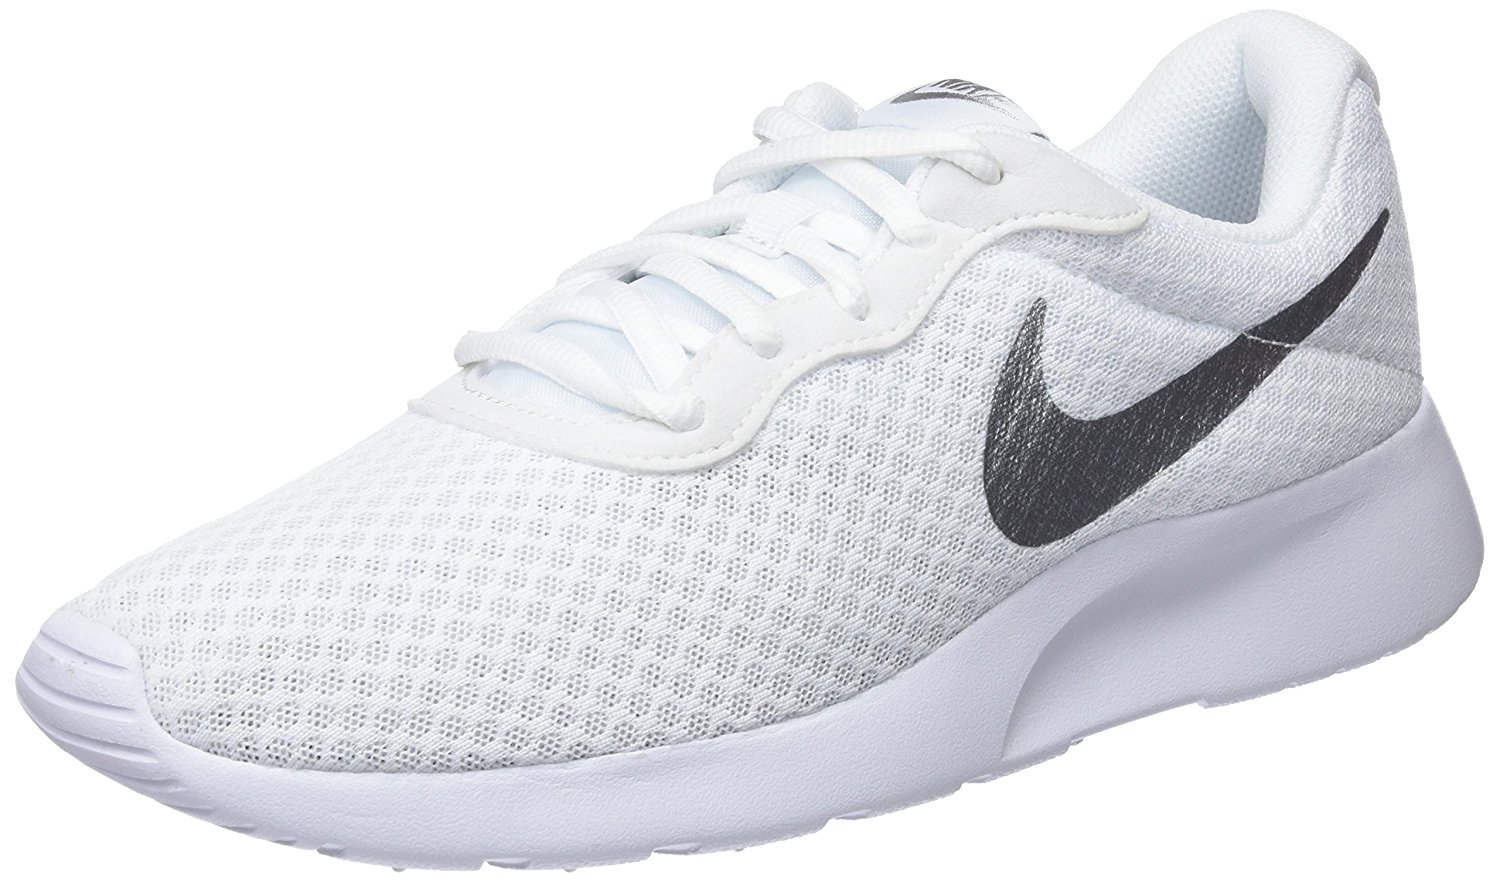 Nike Hombres Sportschuhe Weiss Groesse 6 US /